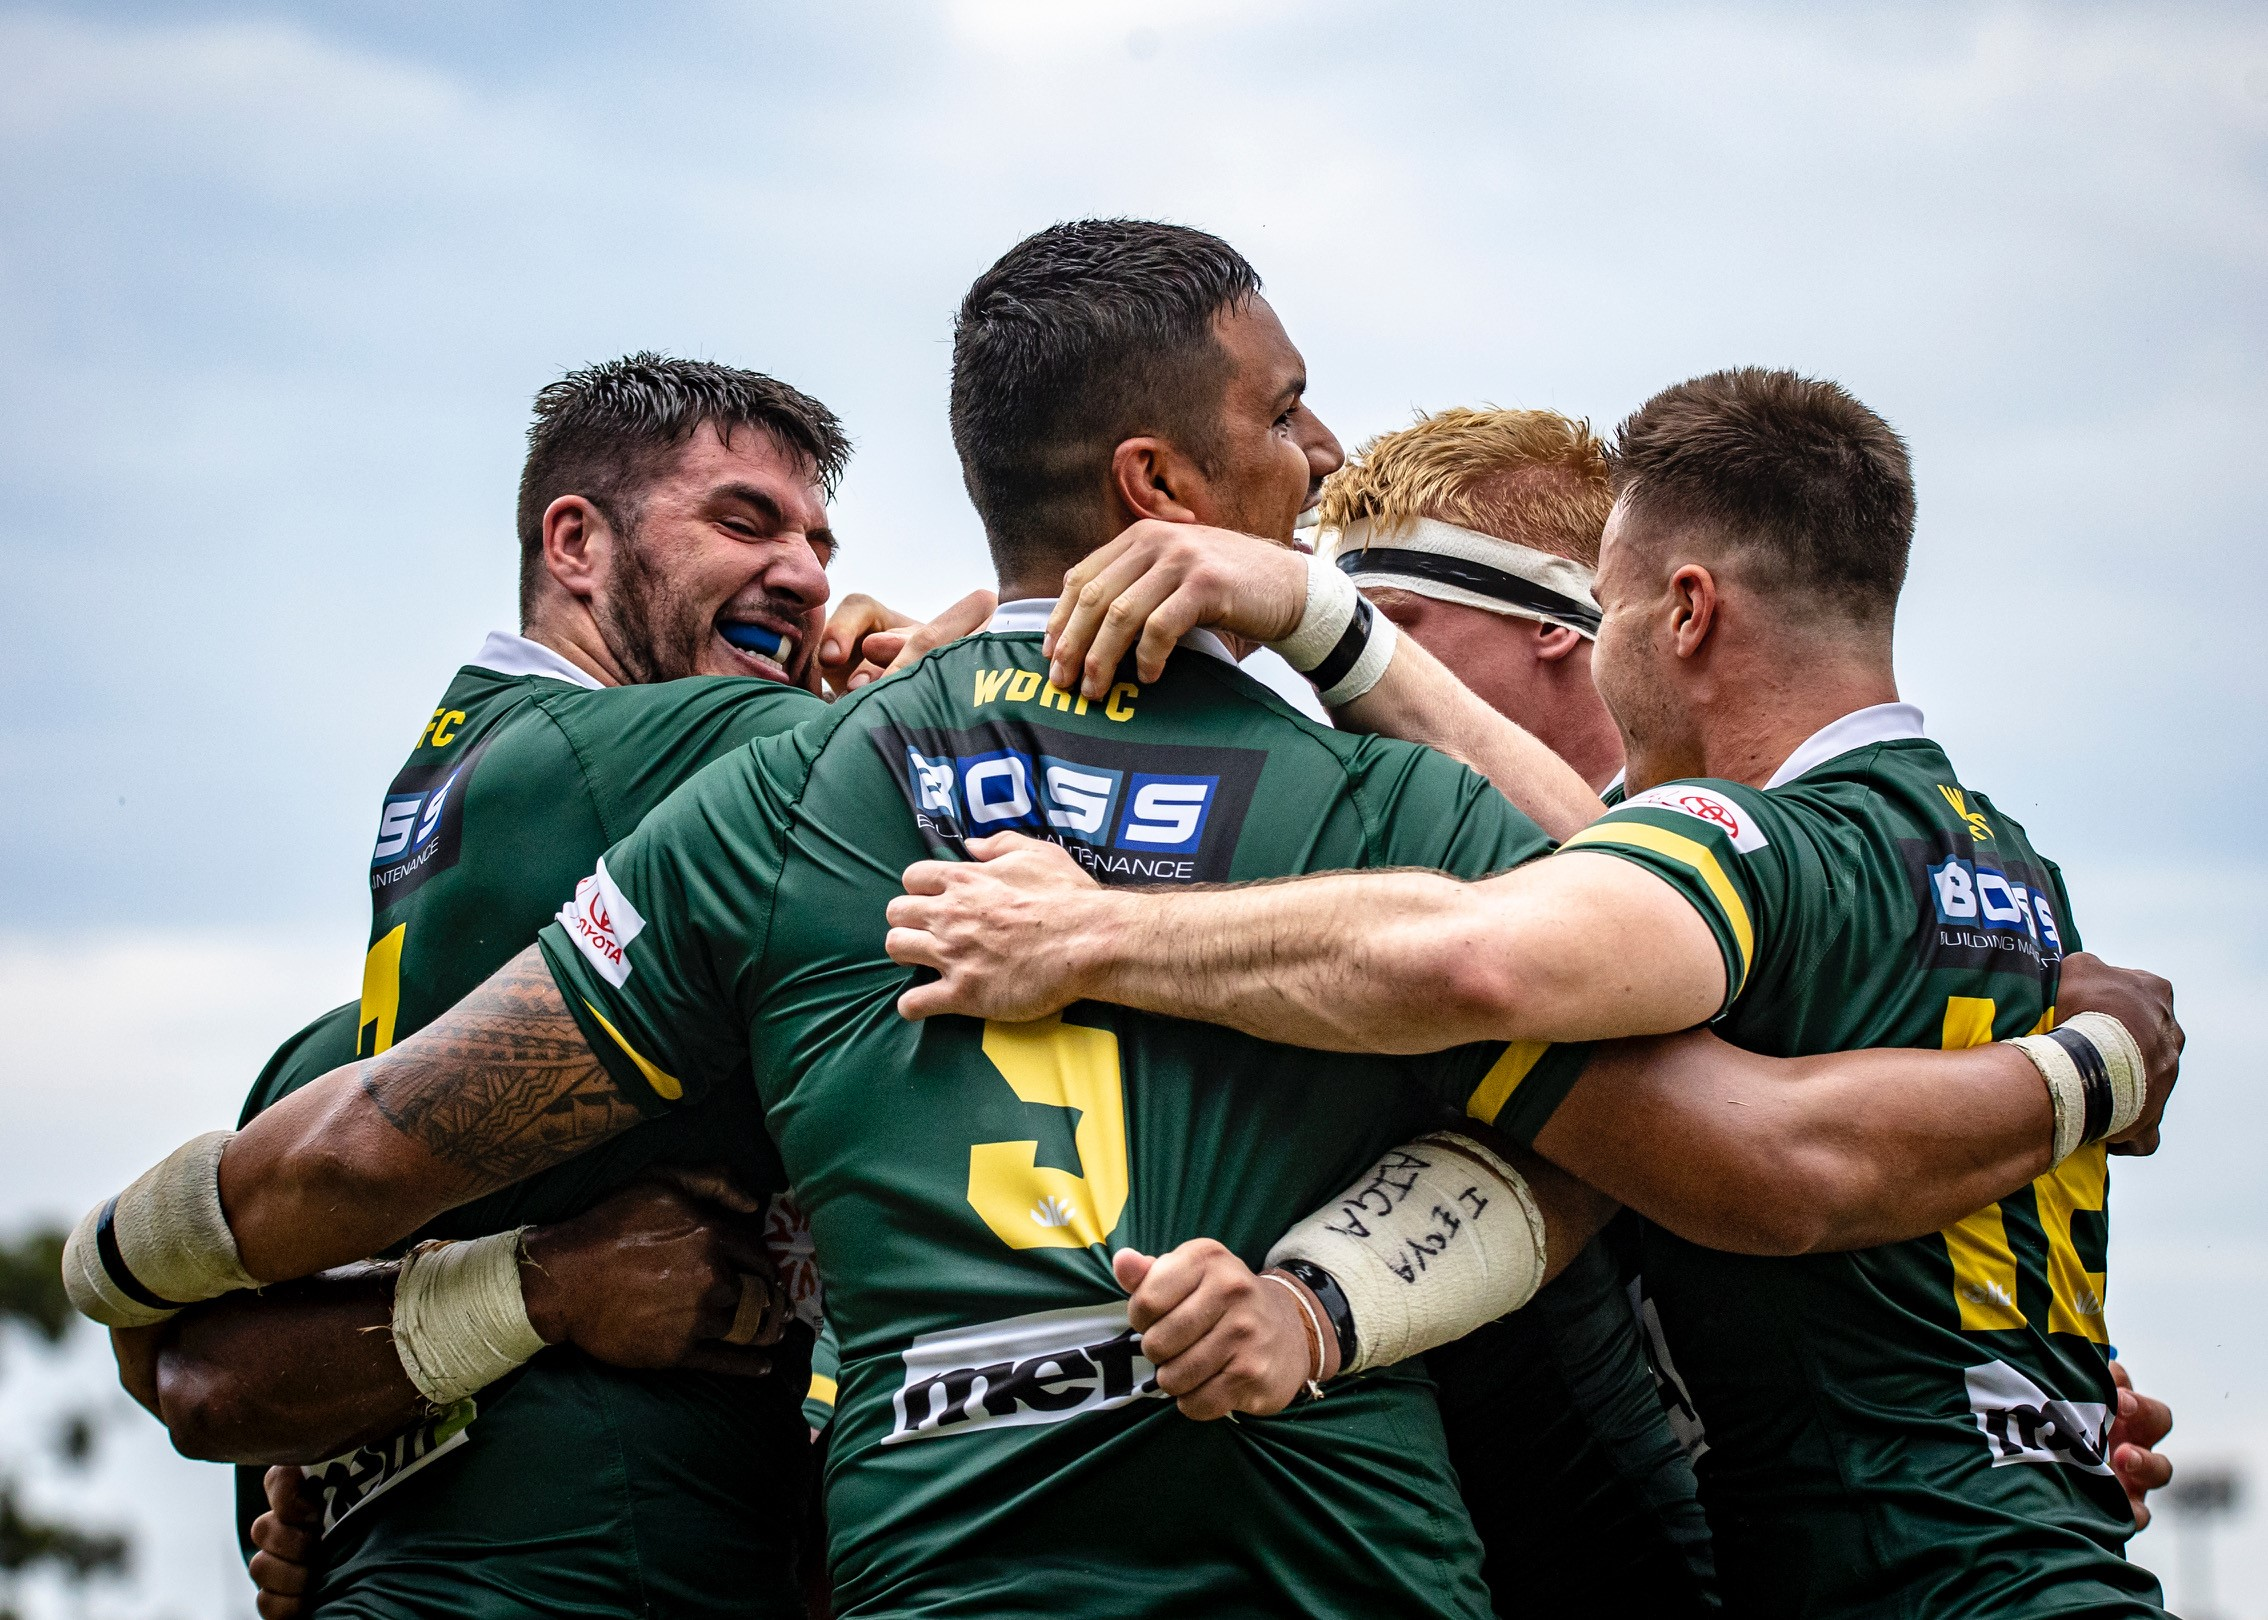 Wests celebrate a try against Brothers at Crosby Park. Photo: Brendan Hertel, QRU